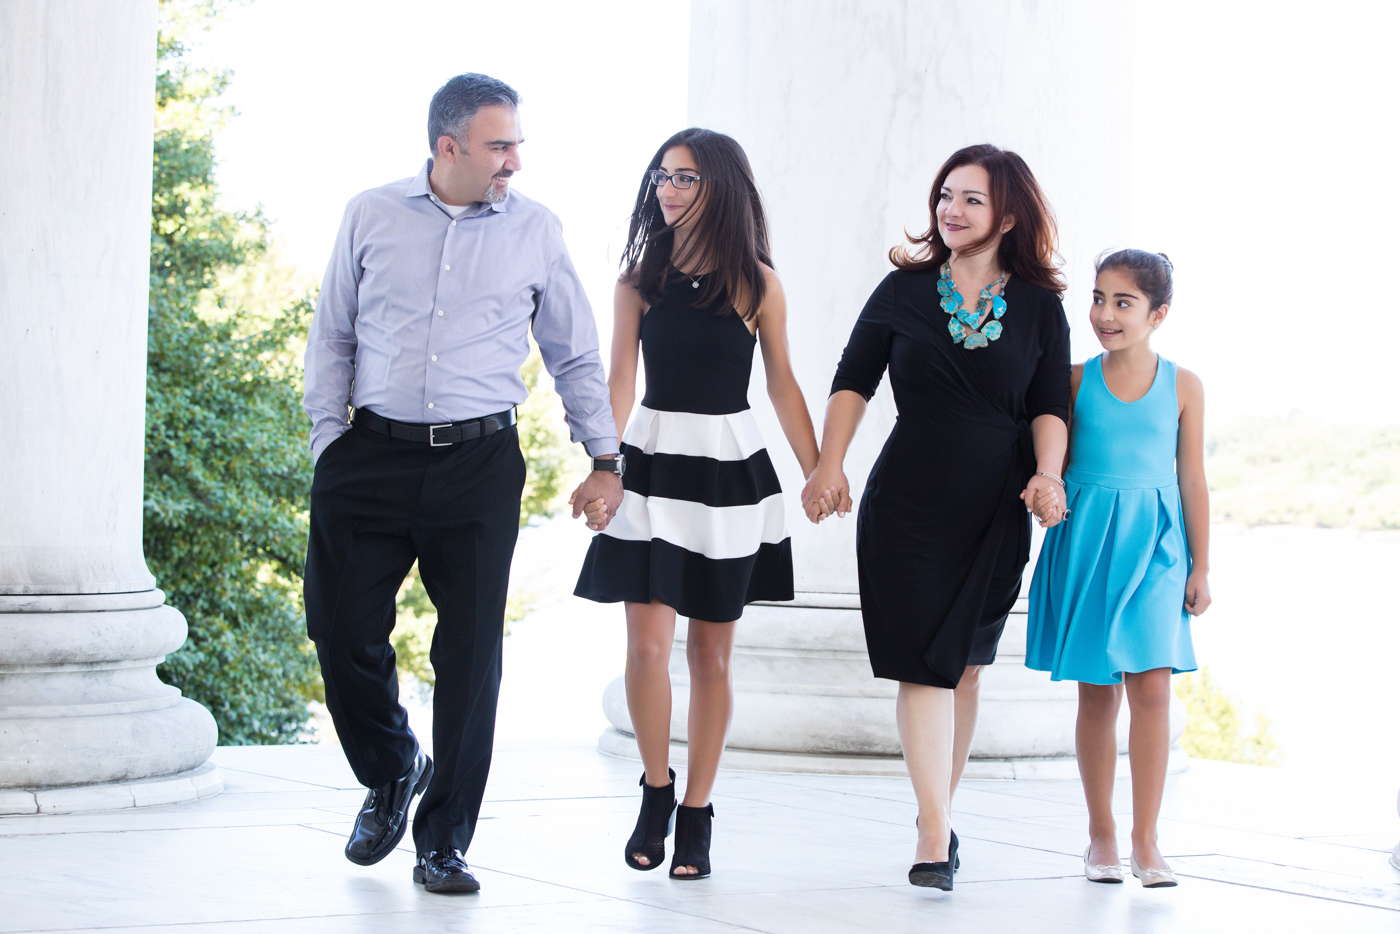 early-fall-family-shoot-in-washington-dc-ksenia-pro-photography-16